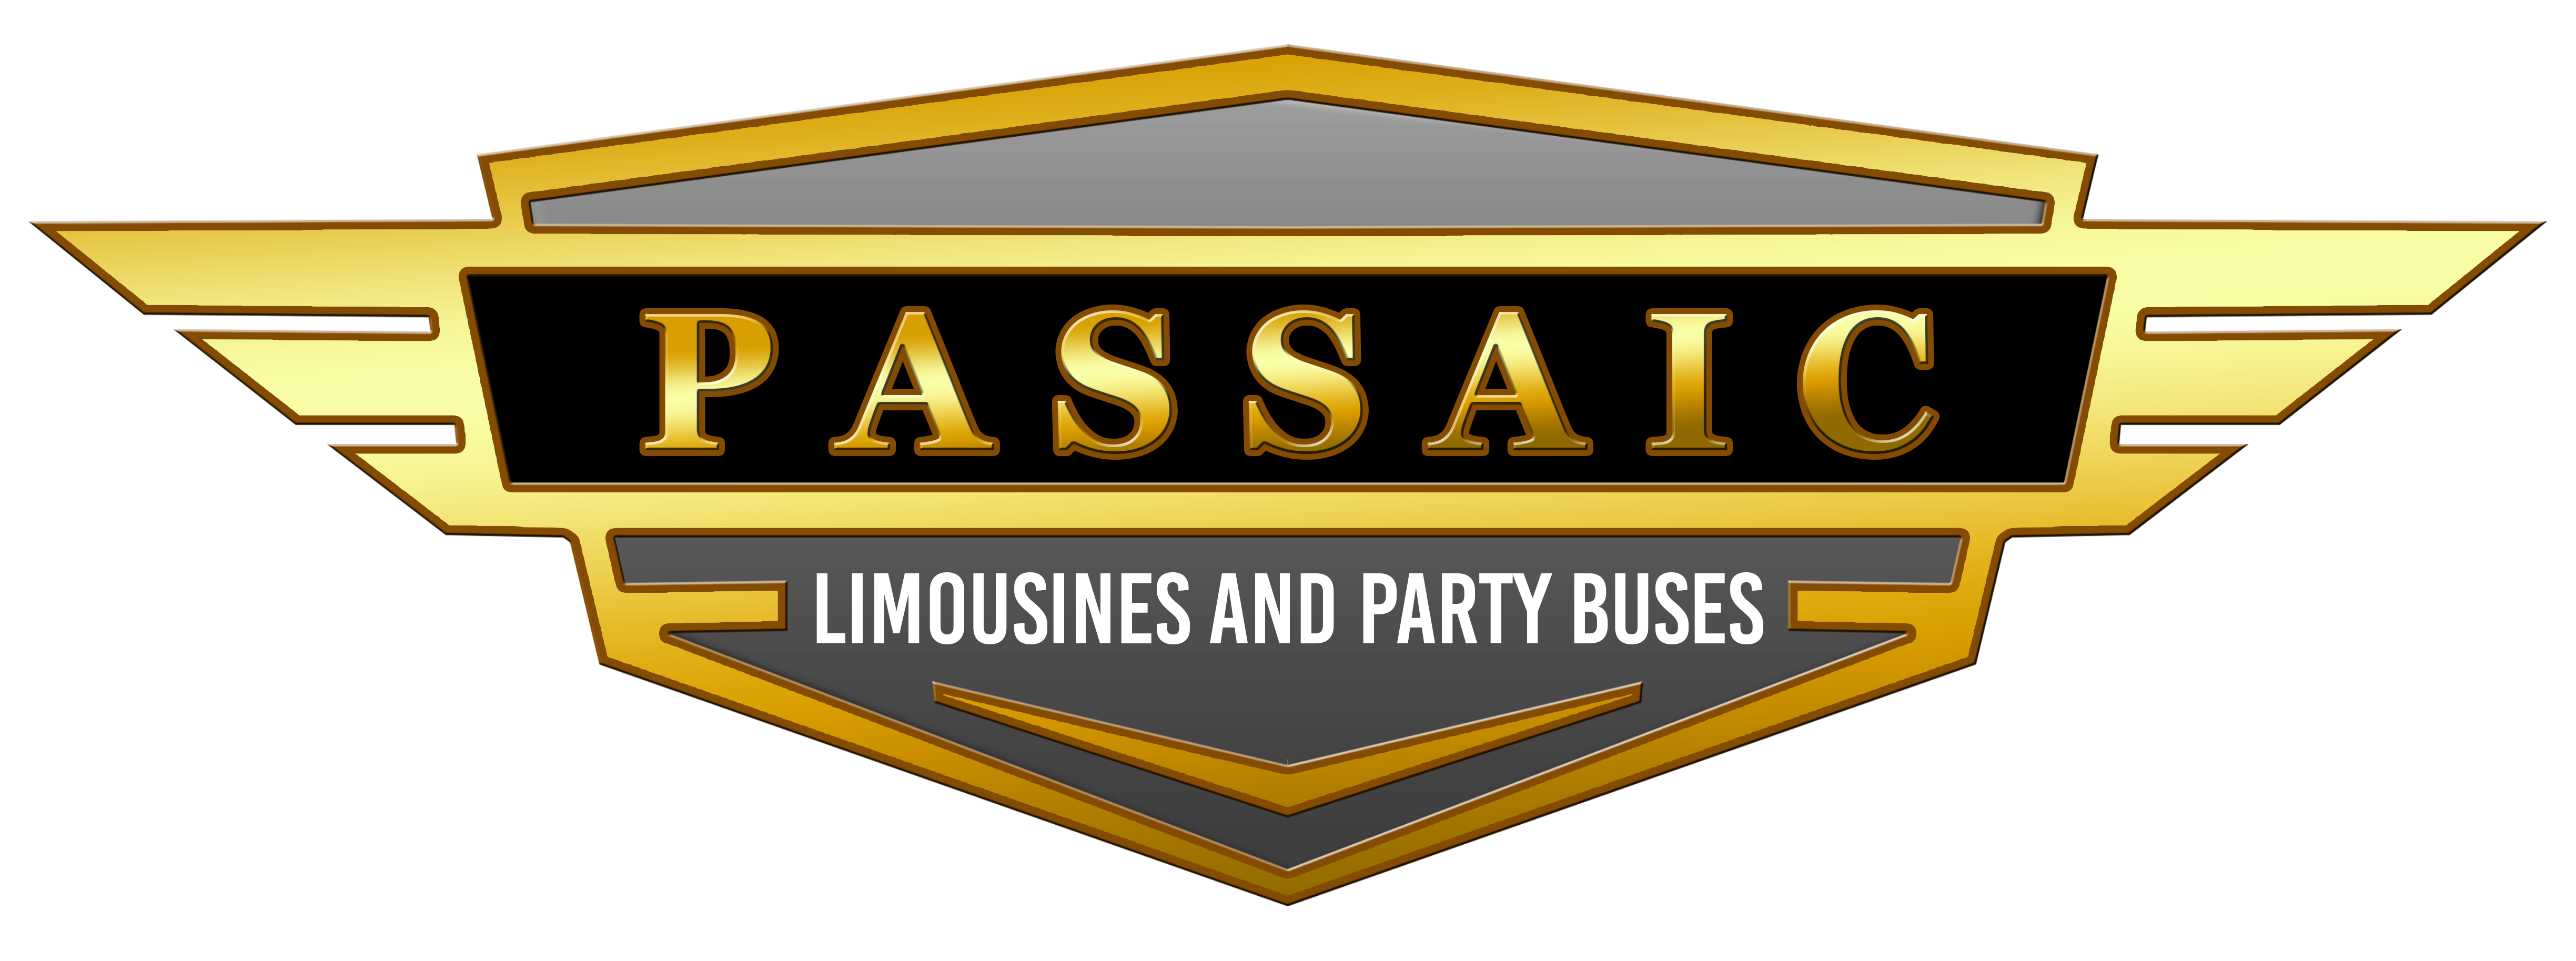 Passaic Limousines And Party Buses | Passaic, New Jersey